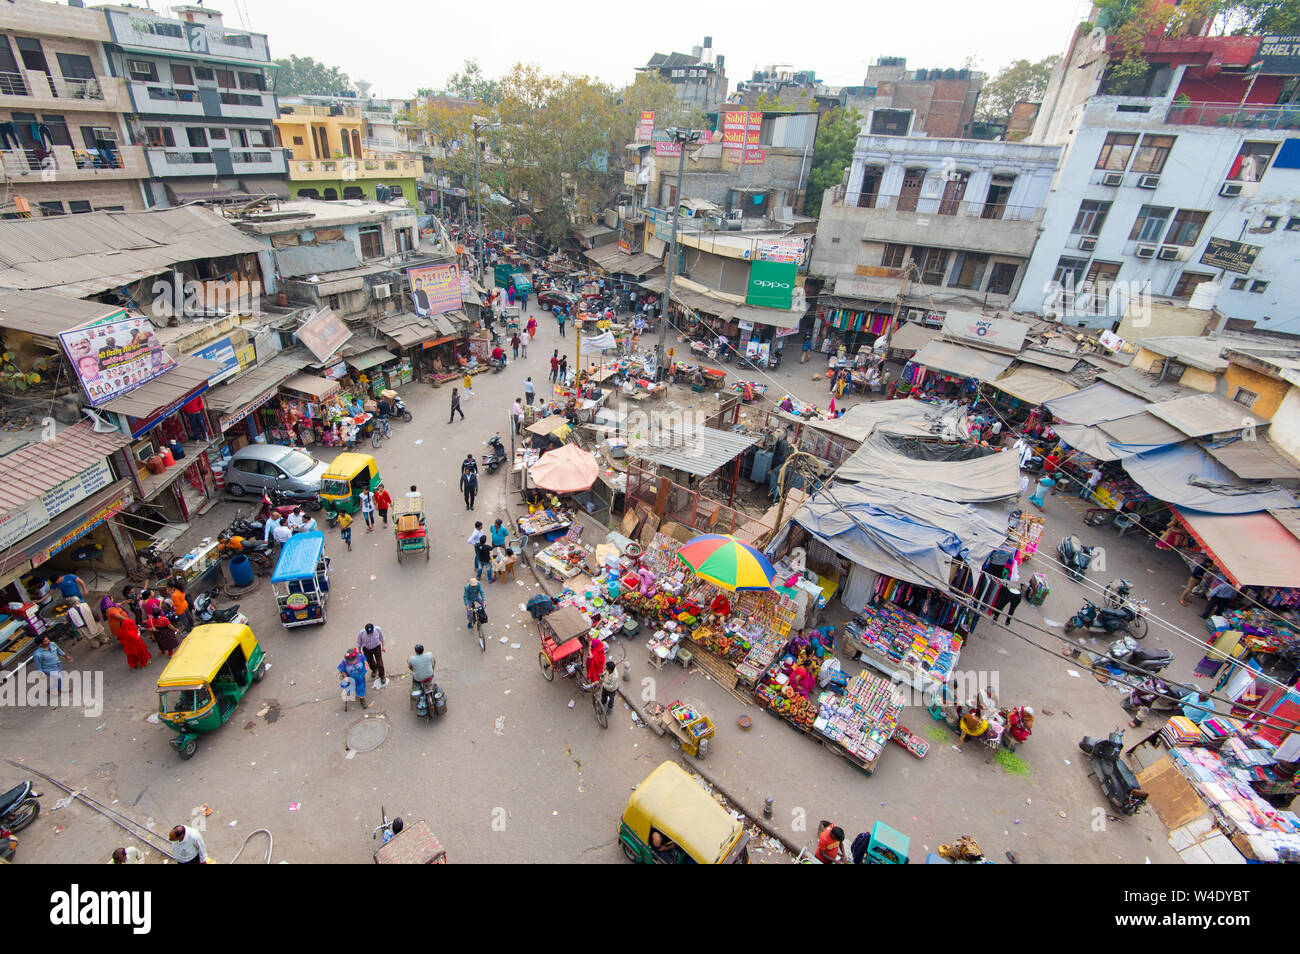 NEW DELHI - FEB 23: Panoramic view of Main Bazar district in New Delhi on February 23. 3018 in India Stock Photo